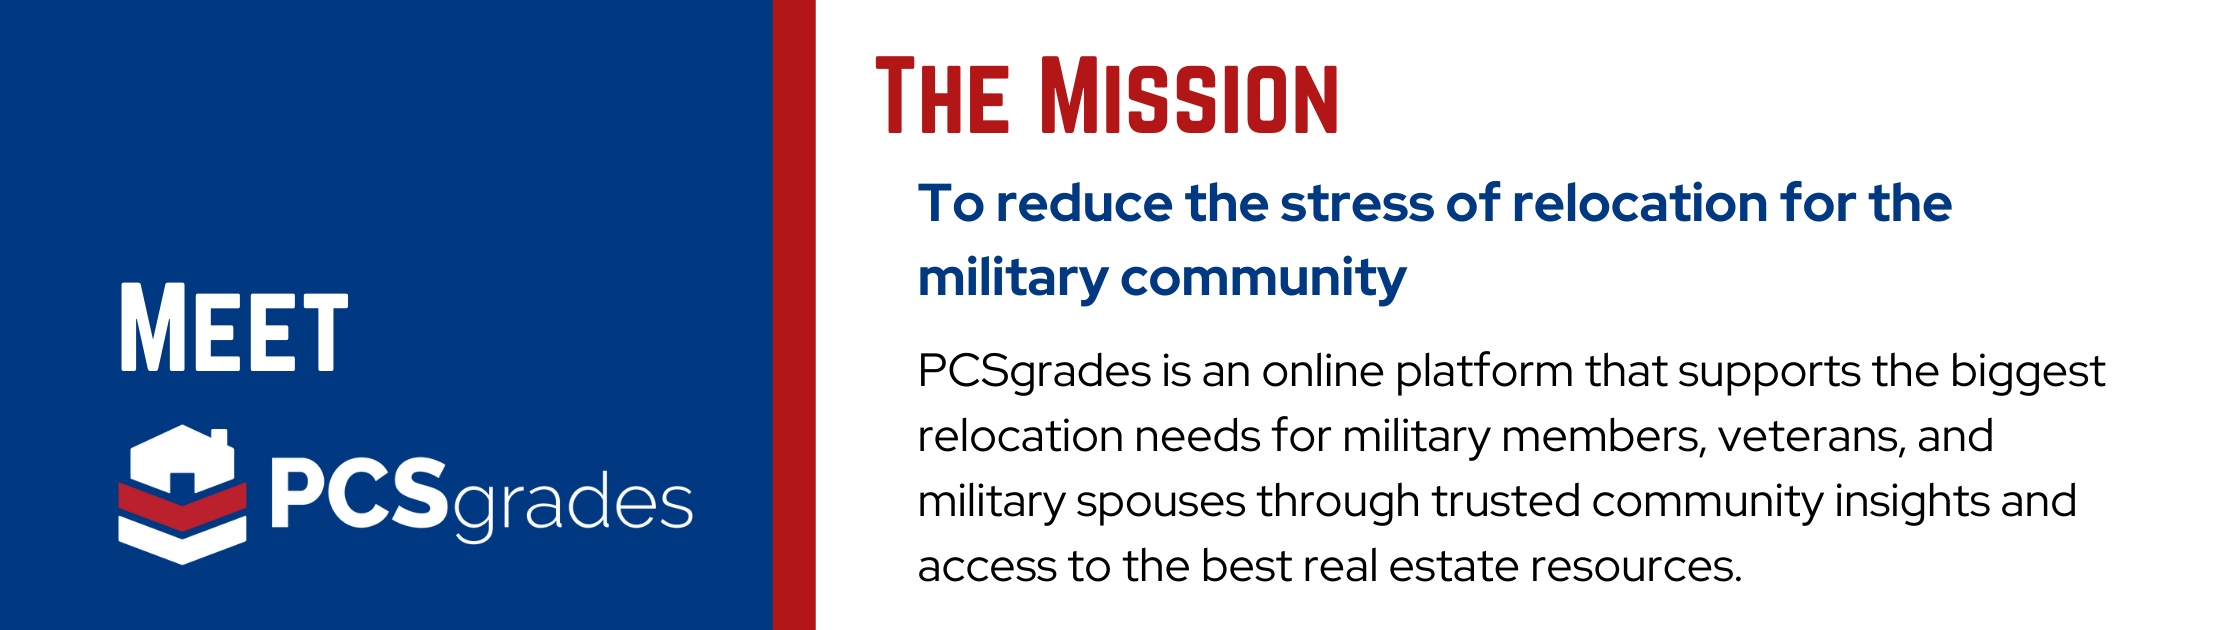 Meet PCS Grades - The Mission is to reduce the stress of relocation for the military community.